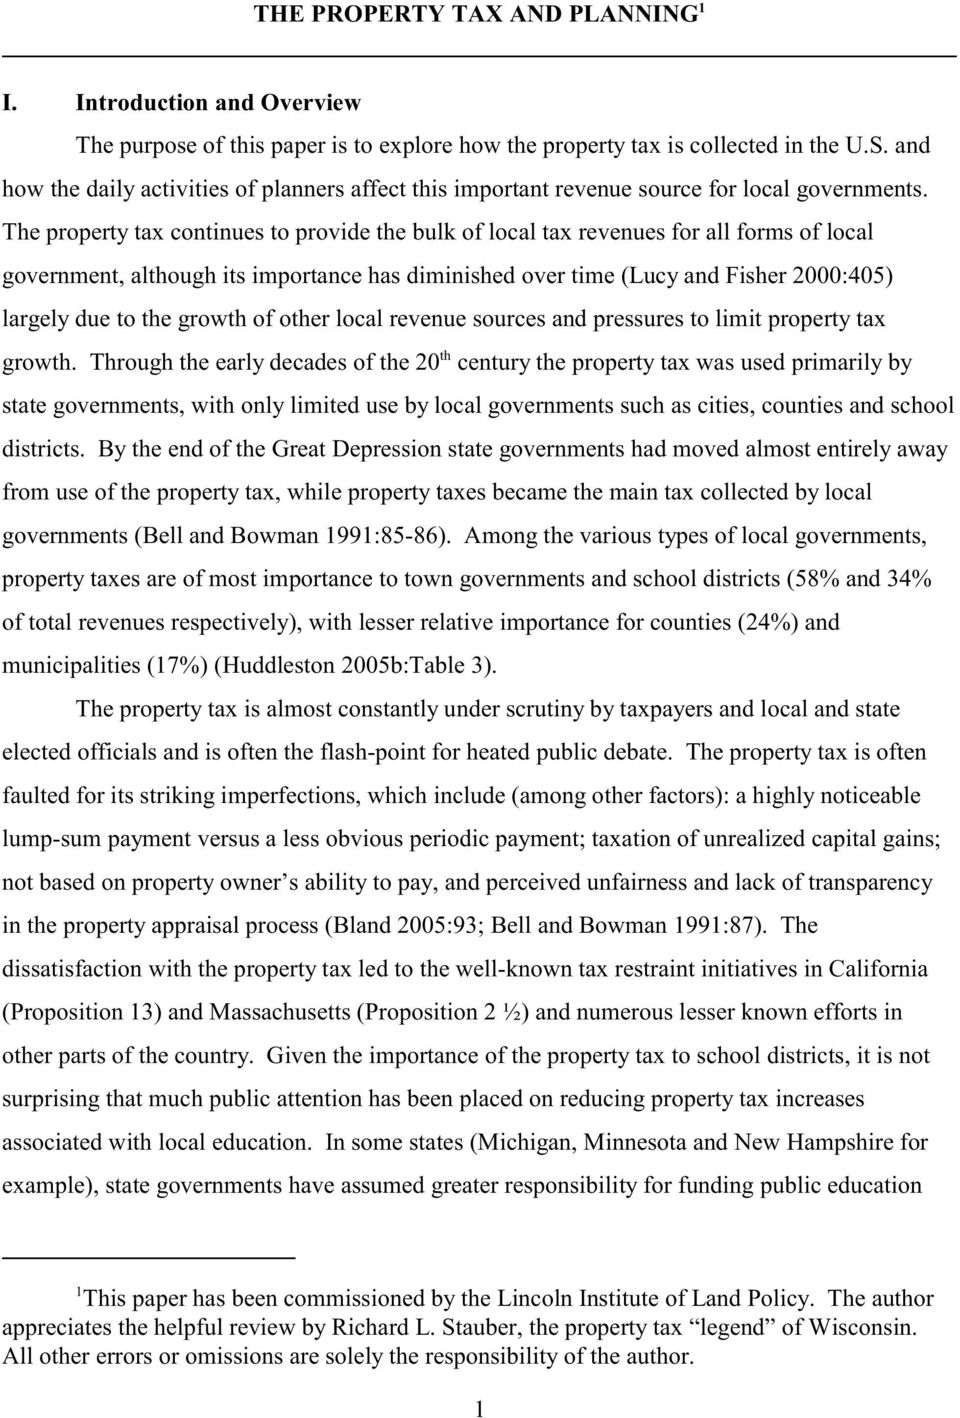 The property tax continues to provide the bulk of local tax revenues for all forms of local government, although its importance has diminished over time (Lucy and Fisher 2000:405) largely due to the